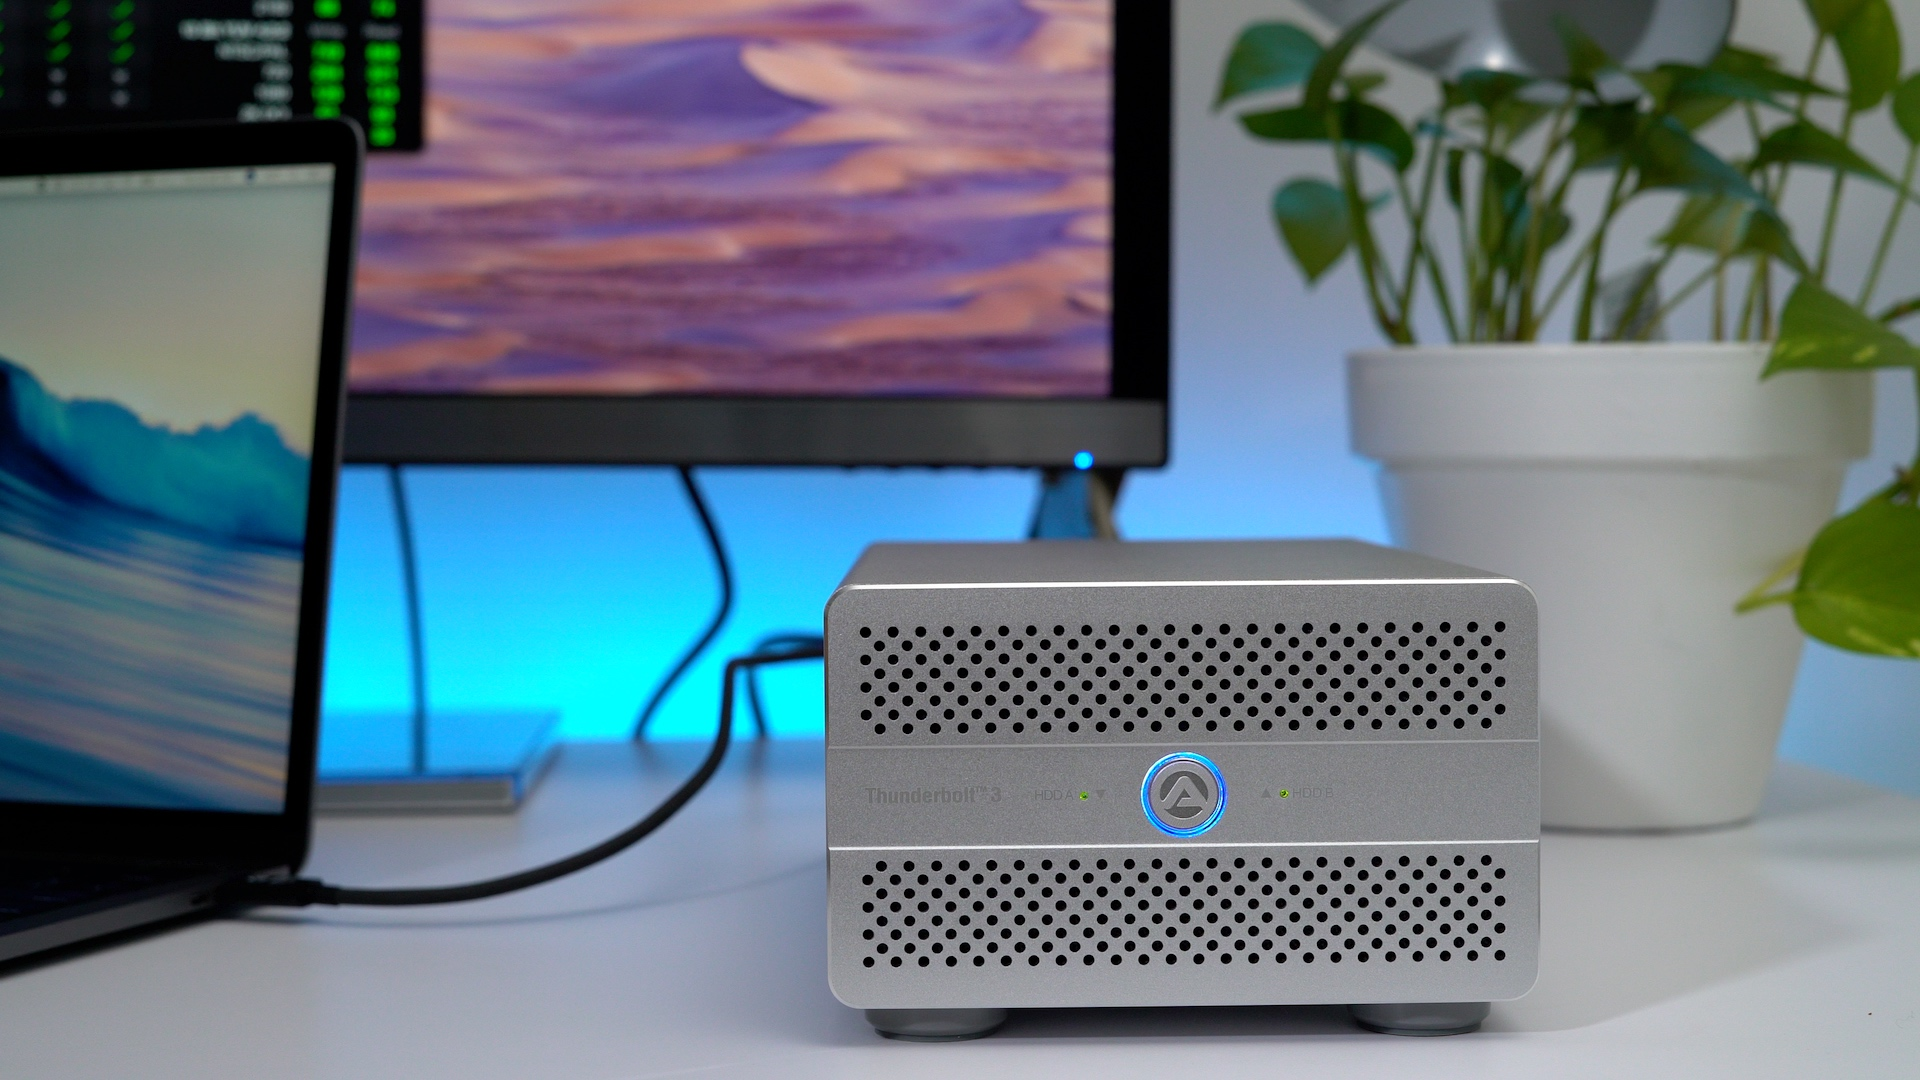 akitio-thunder3-duo-pro-quad-review-displayport-thunderbolt-3-connected